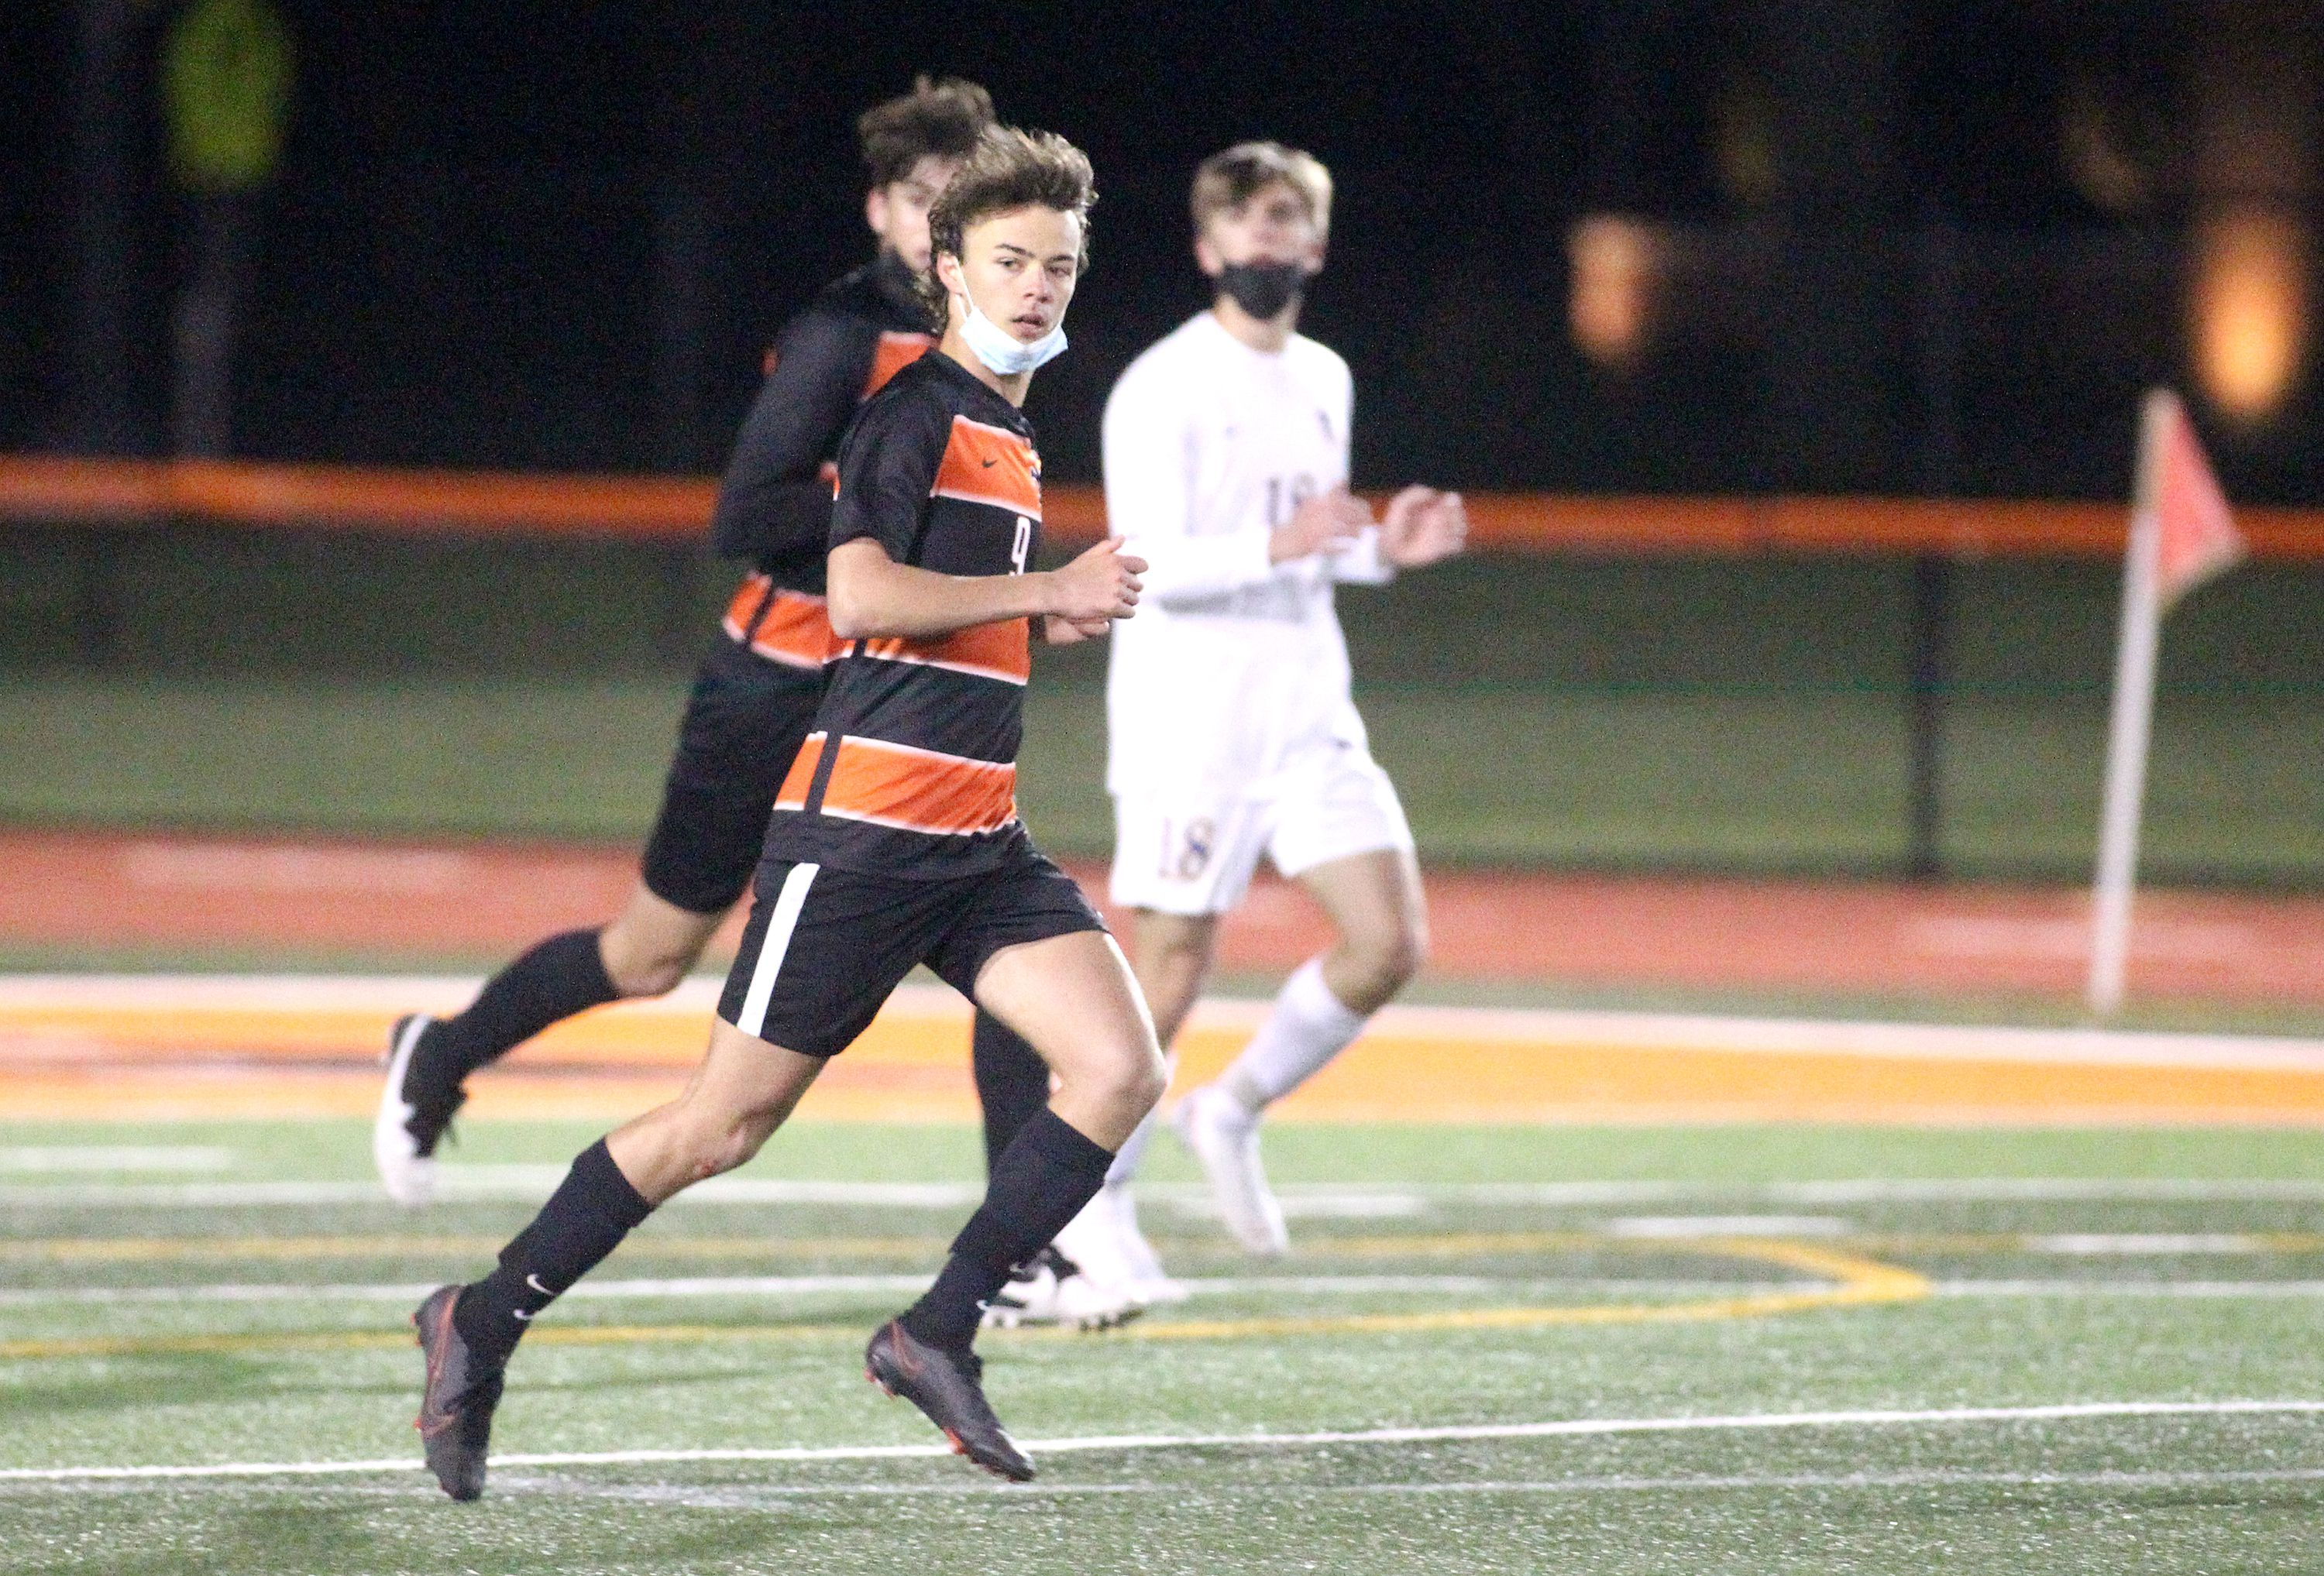 Boys Soccer: St. Charles East, Wheaton North play to 1-1 draw, close out DuKane season of 'resiliency'